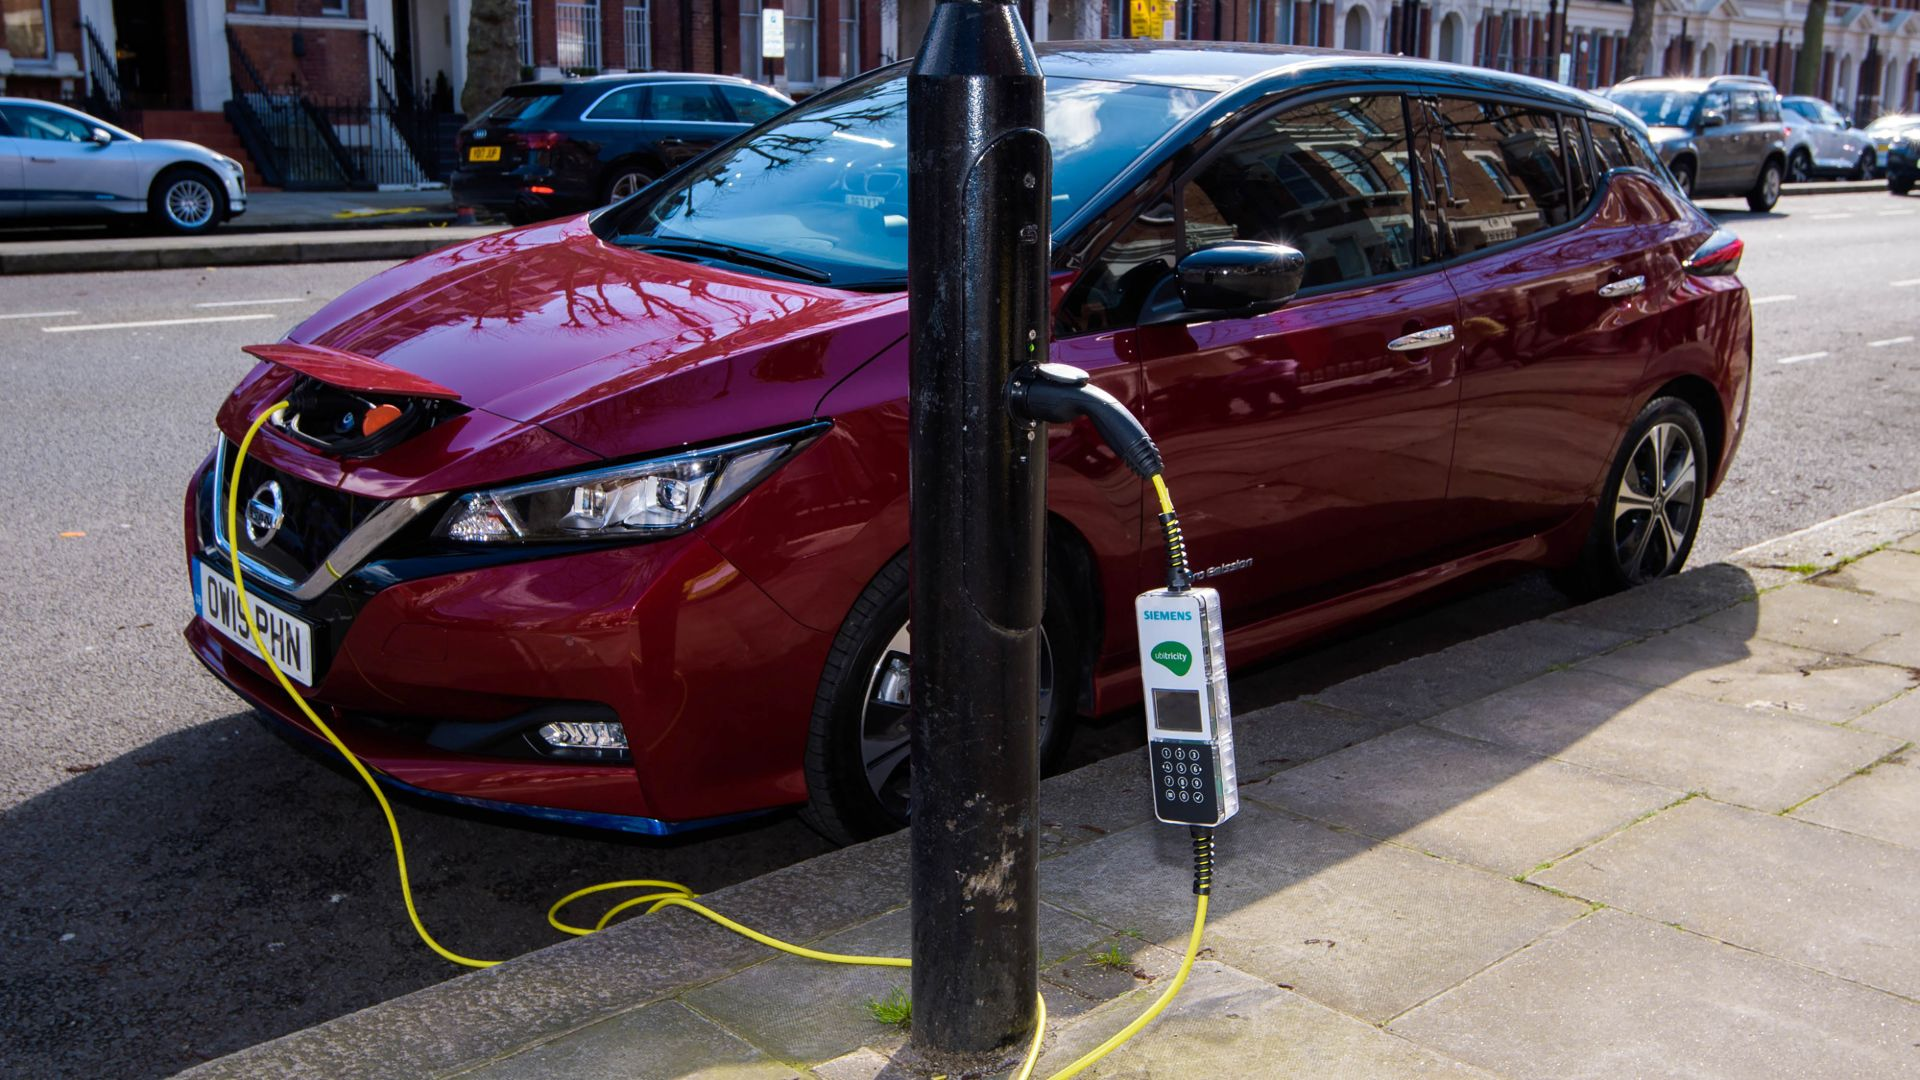 'Electric avenue' opens in london with full street lamp car charging conversion